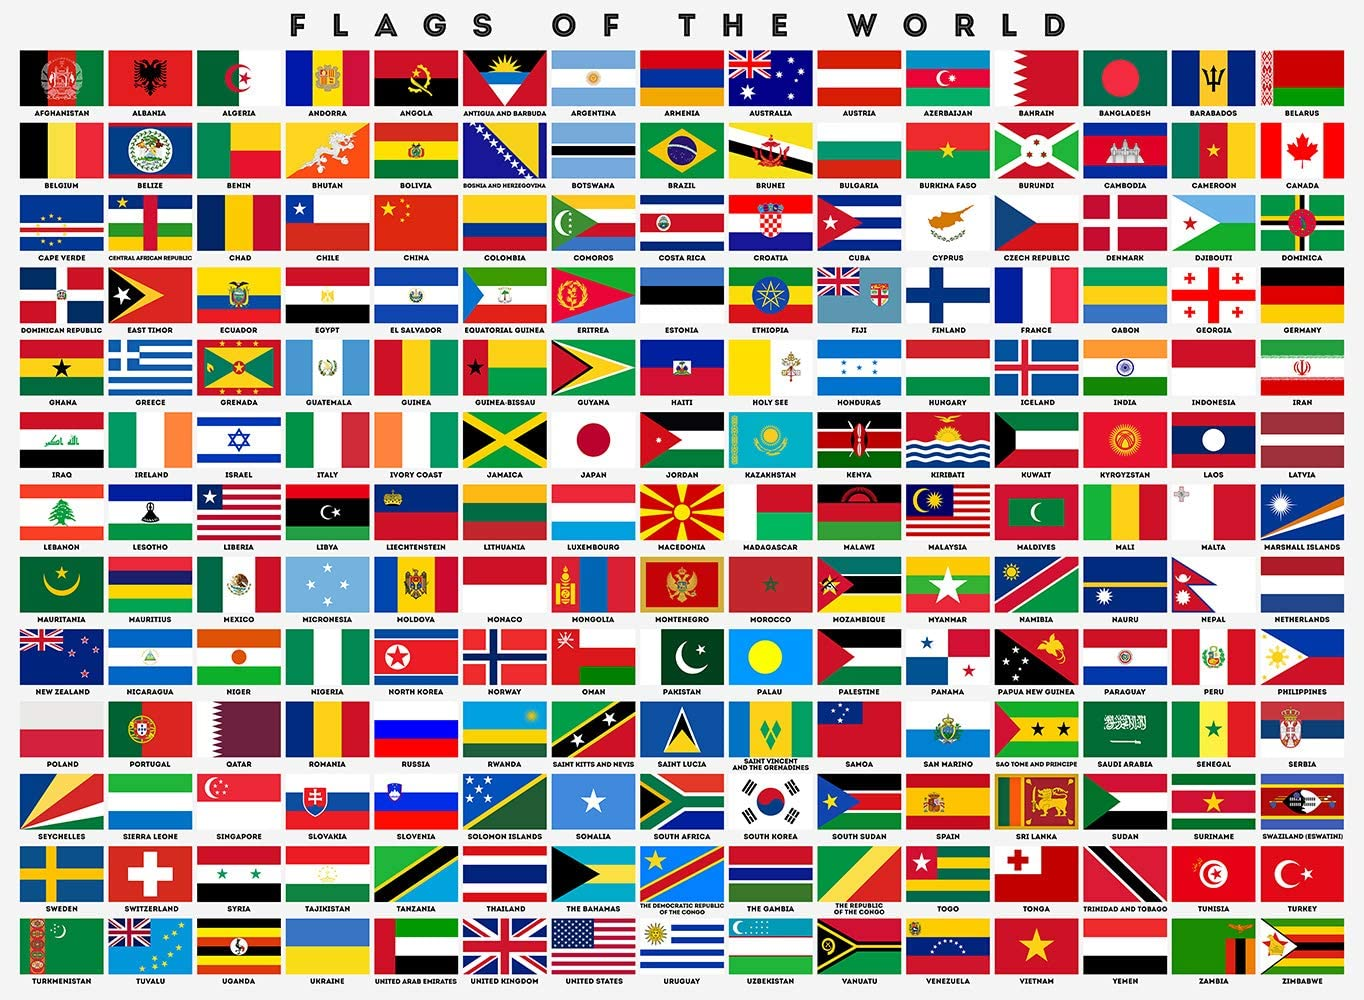 Zapista Flags Of The World Art Print Country Flags Poster Classroom Educational Chart Gifts Wall Decor Unframed 12 X 8 75 Posters Prints